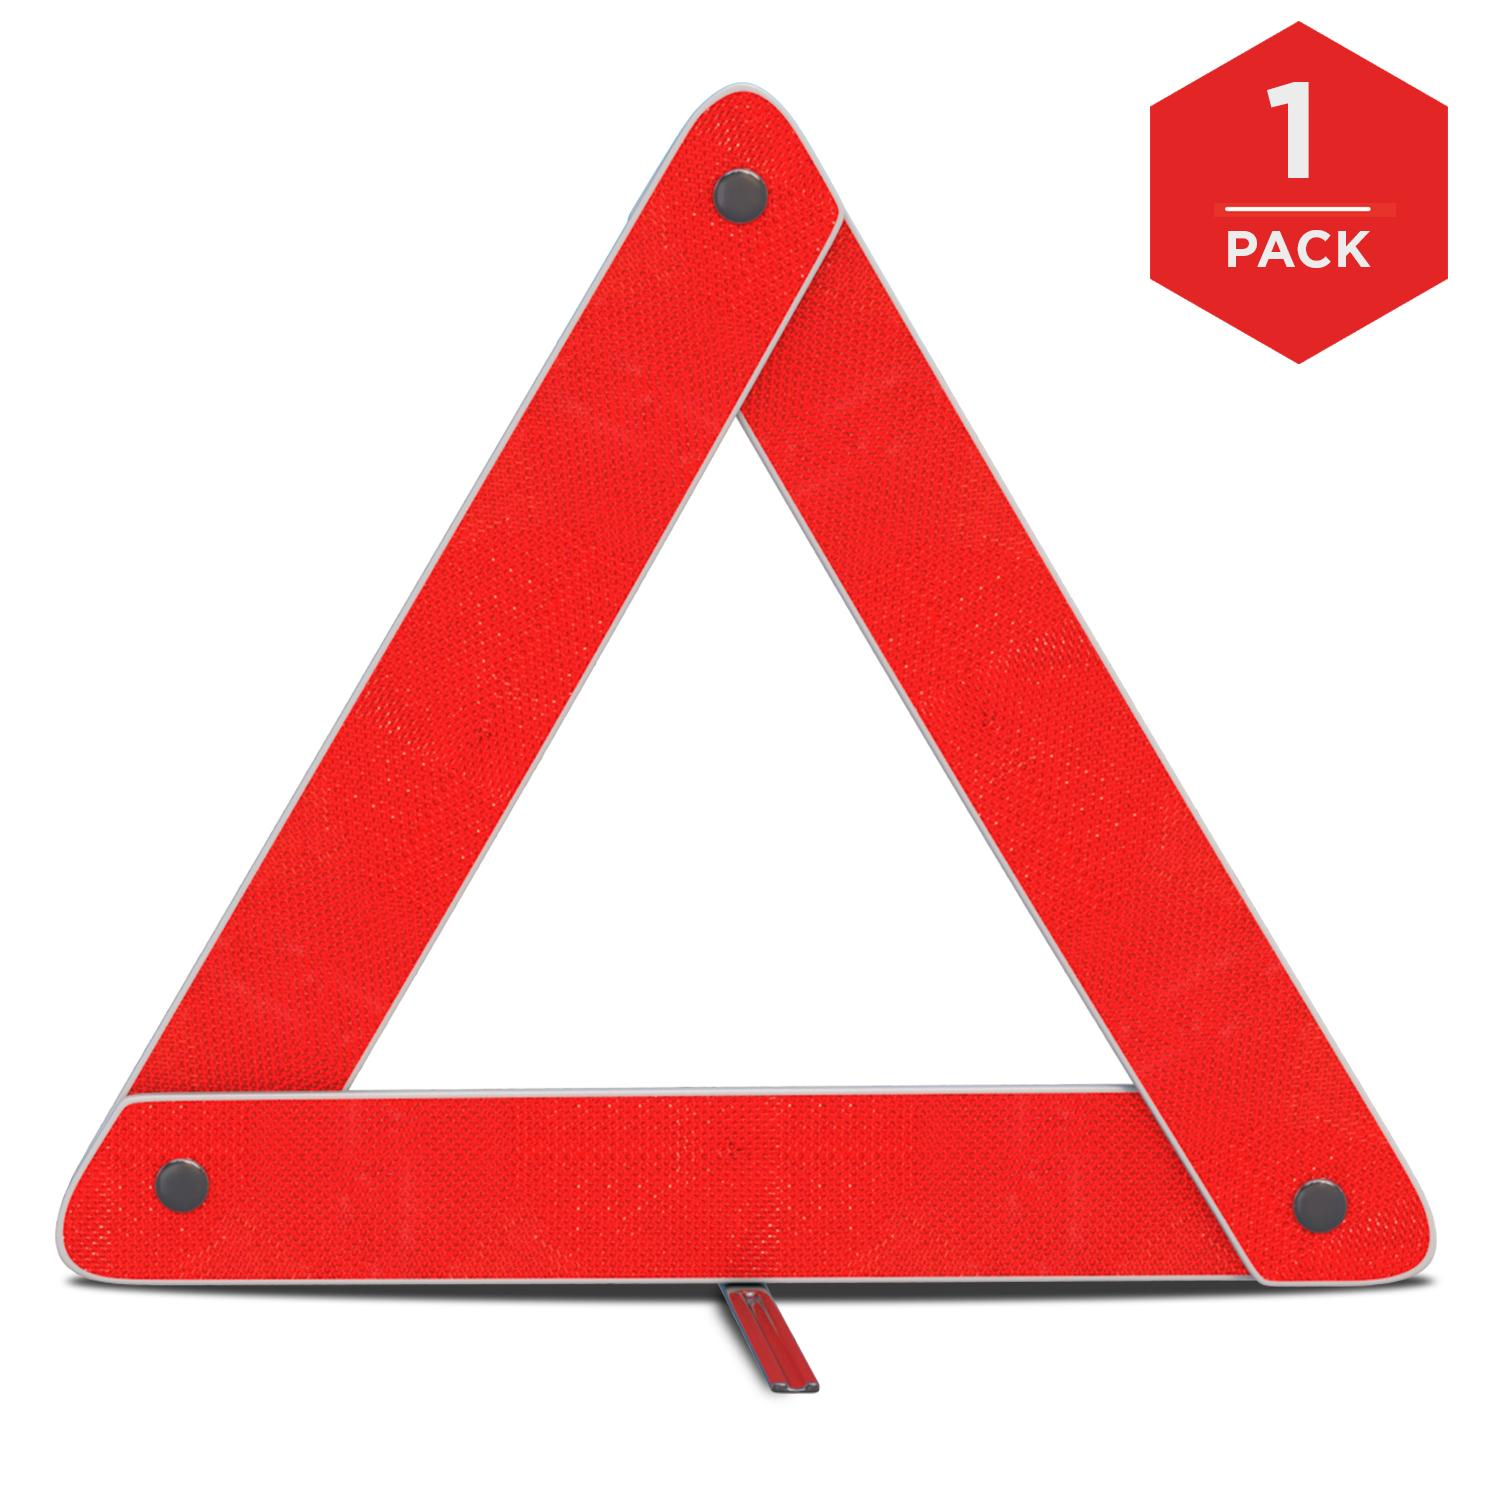 Tractor Reflective Triangles : Amazon mauto emergency warning triangle foldable